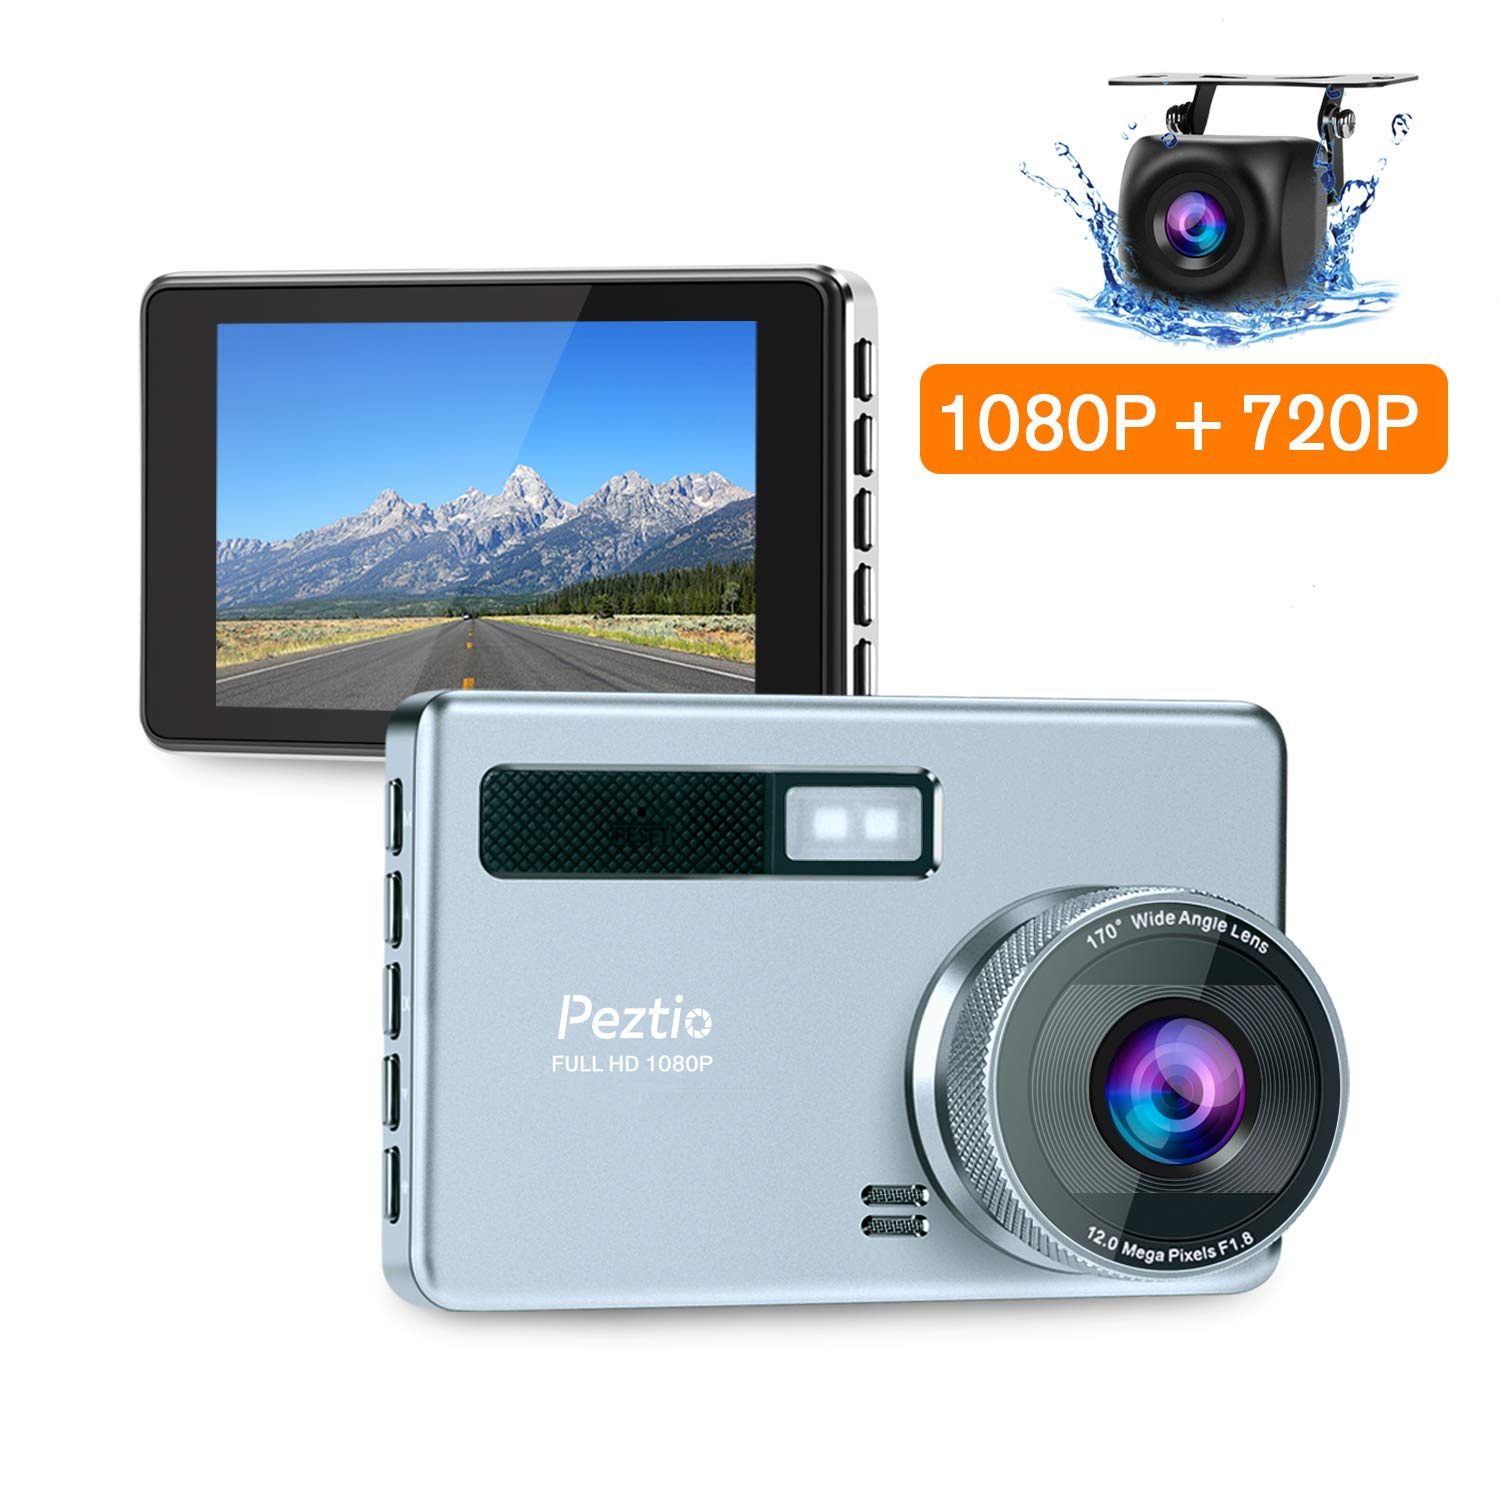 Dual Dash Cam Front and Rear, FHD 1080P Dash Camera for Cars with HD 720P Rear Camera, Night Vision, 3.2 inch IPS Screen, 170 Super Wide Angle, G Sensor, Parking Monitor, WDR, Motion Detection